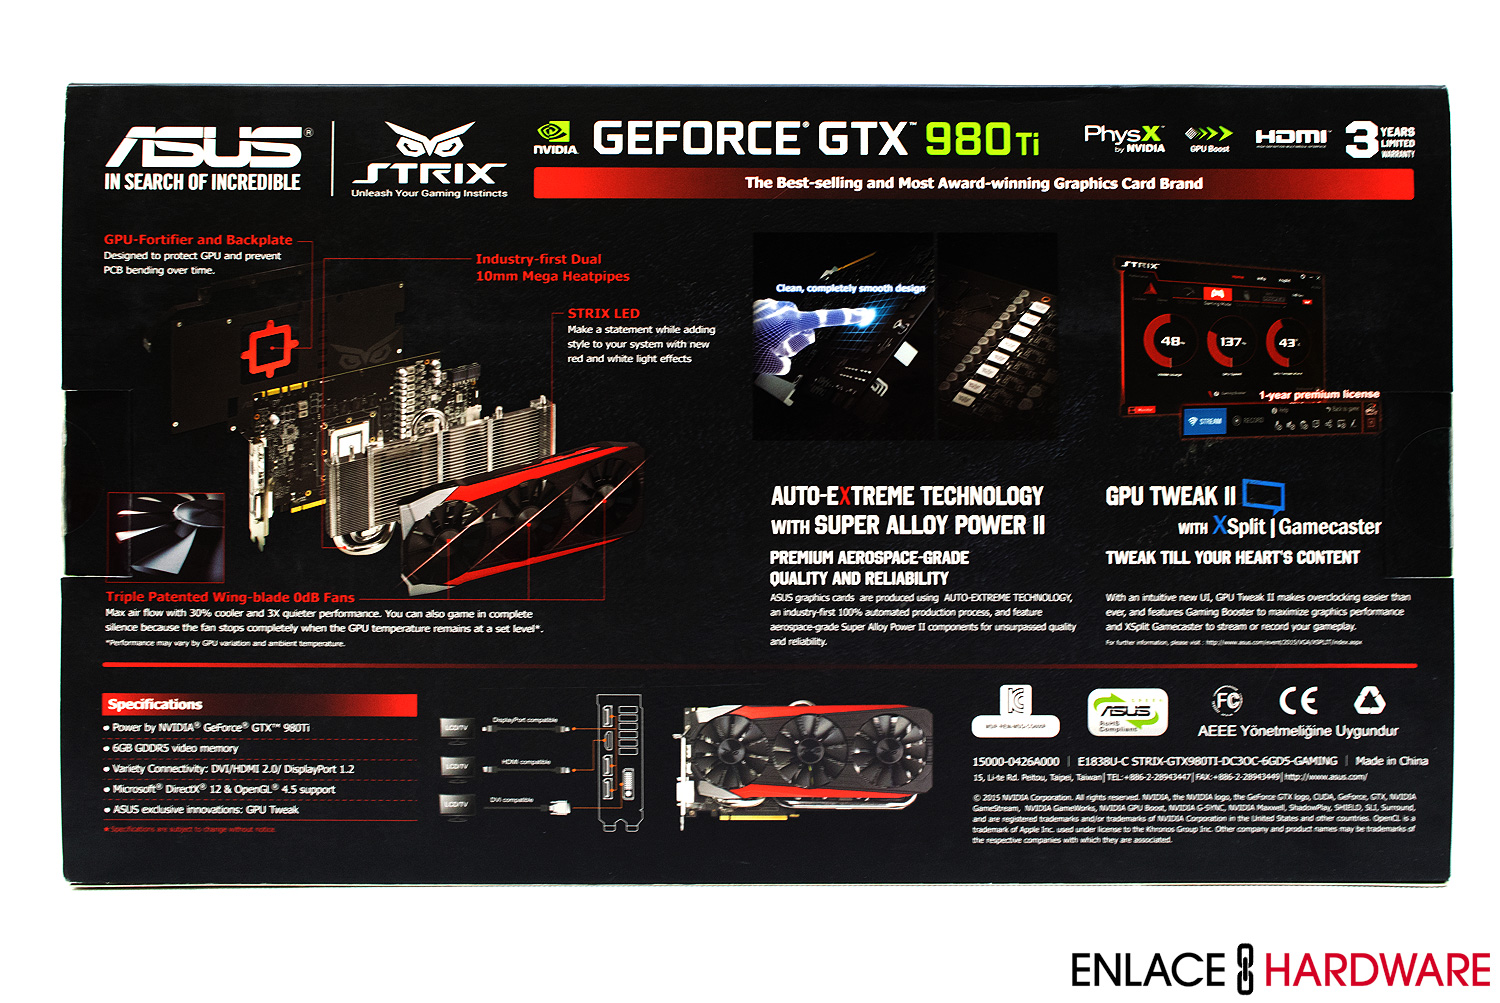 ASUS-Strix-GeForce-GTX-980-Ti-Review-3